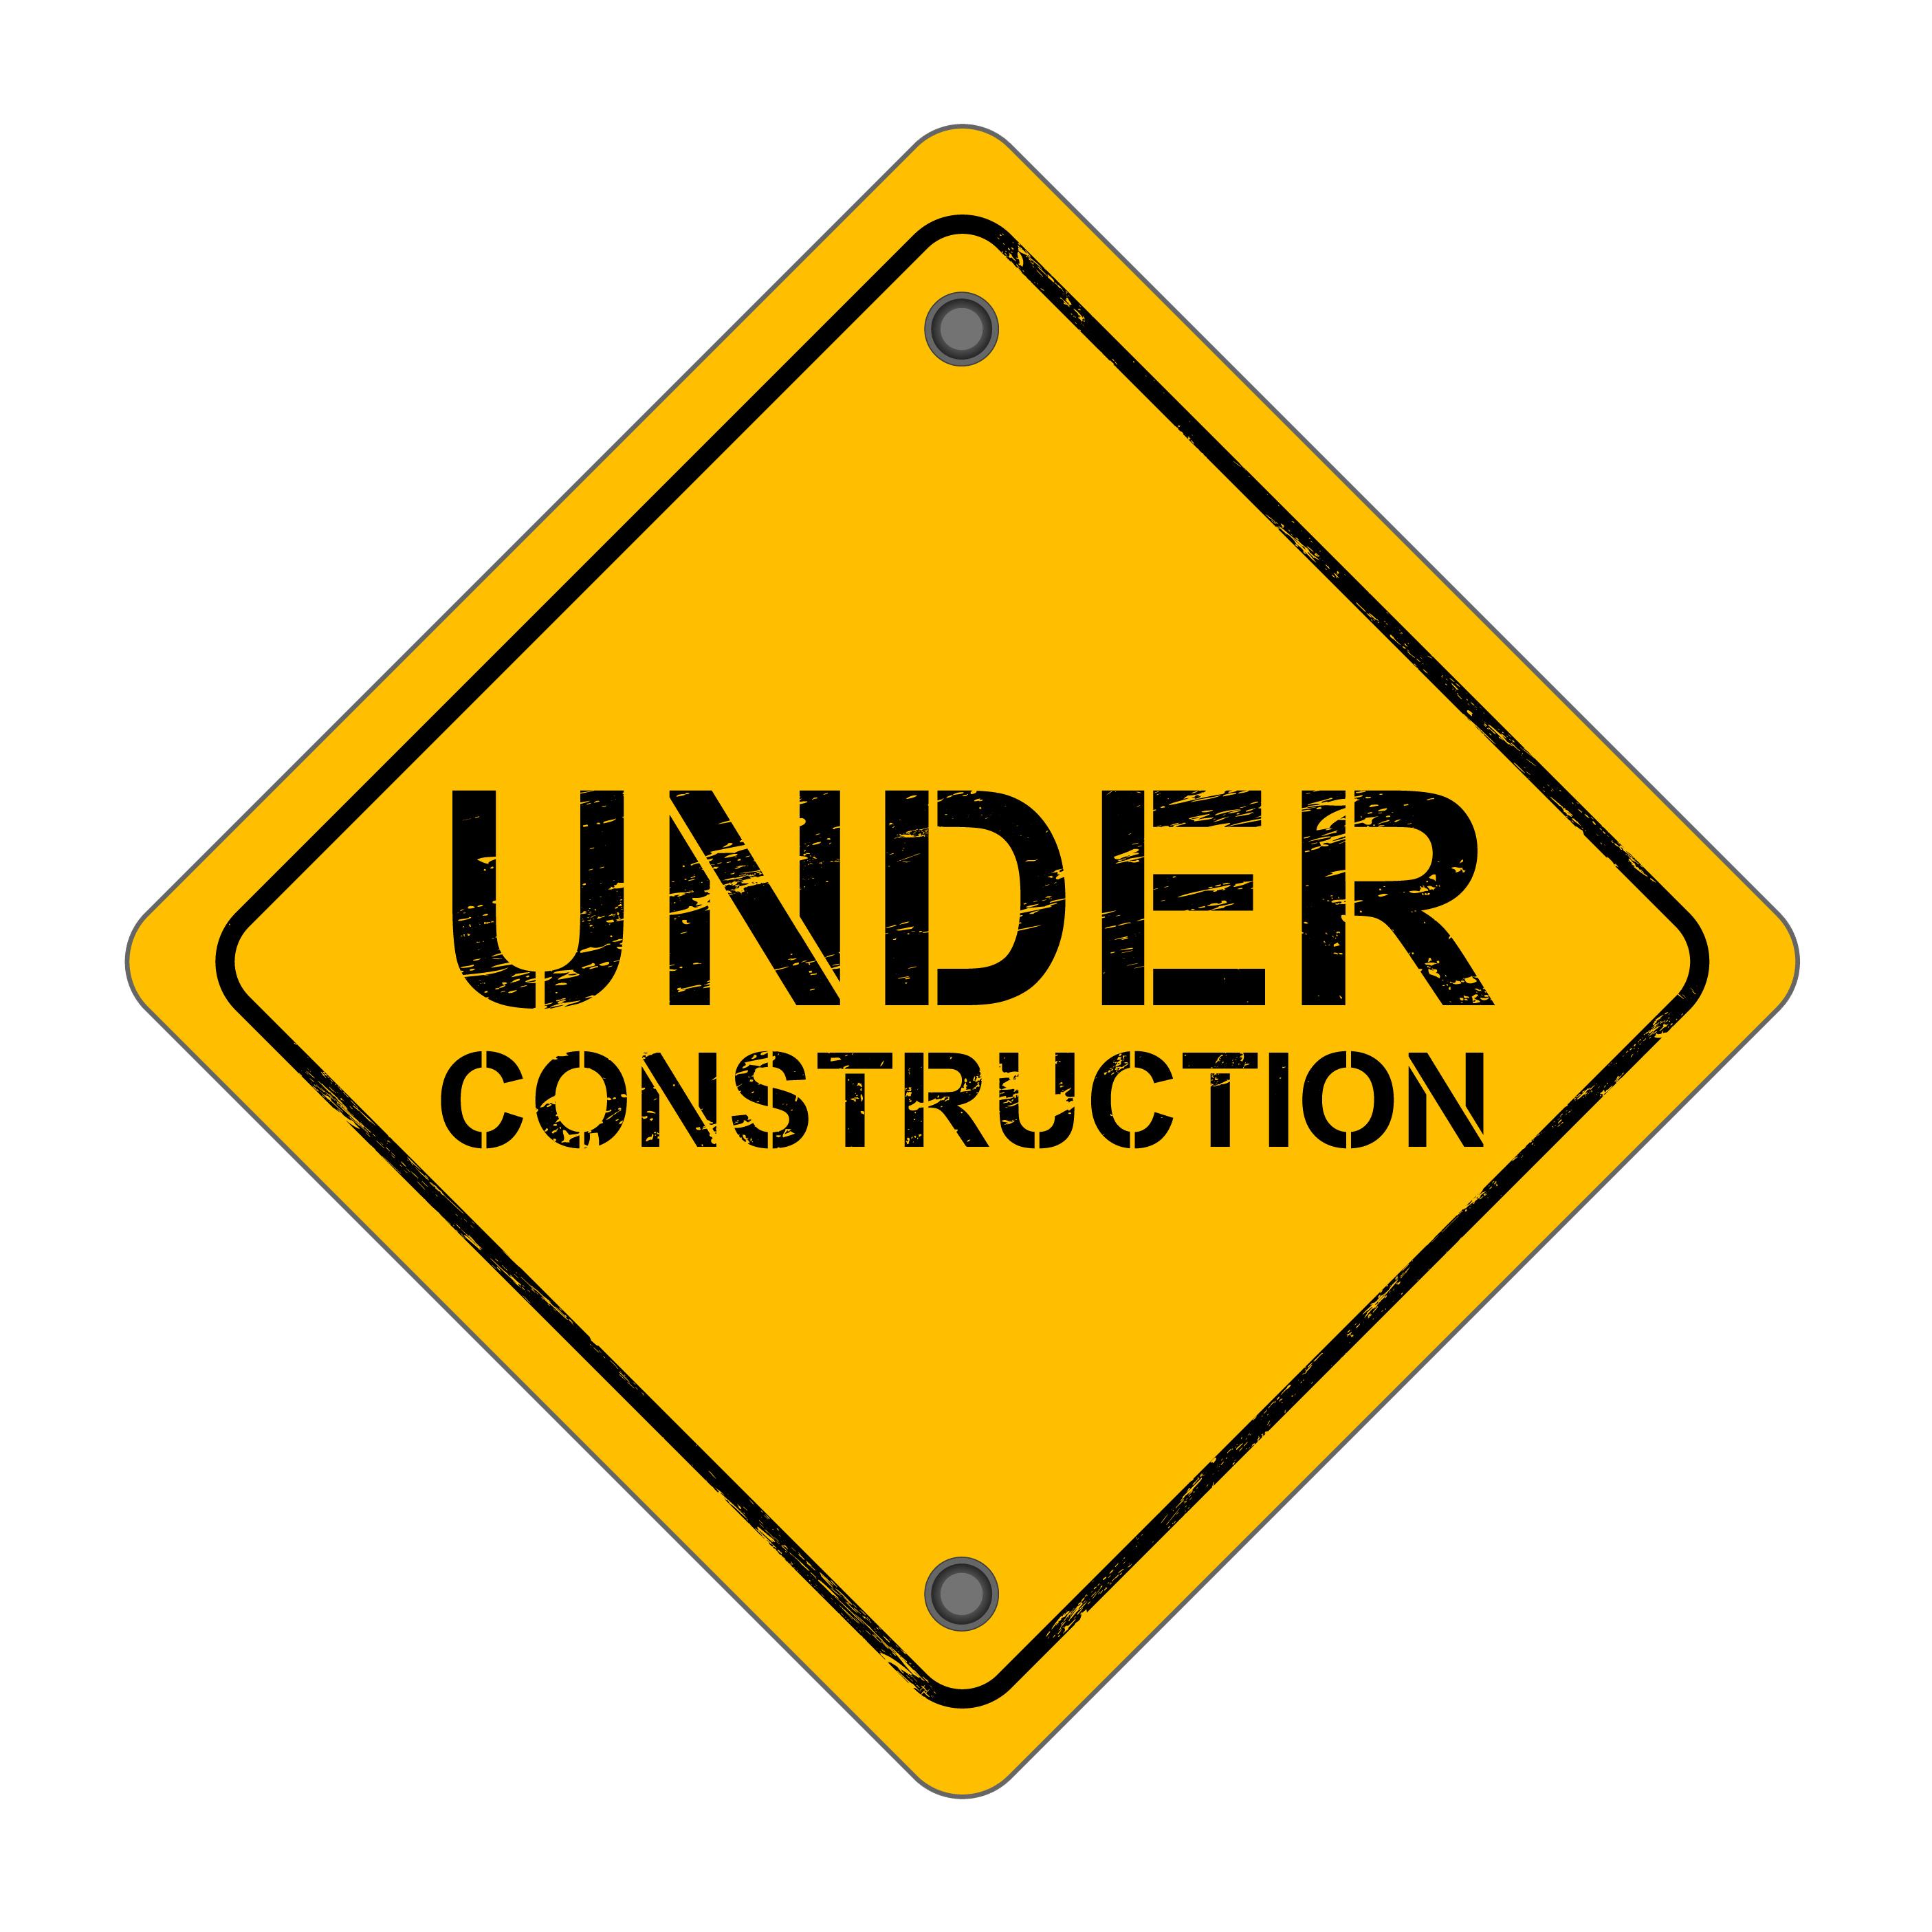 under_construction_PNG66